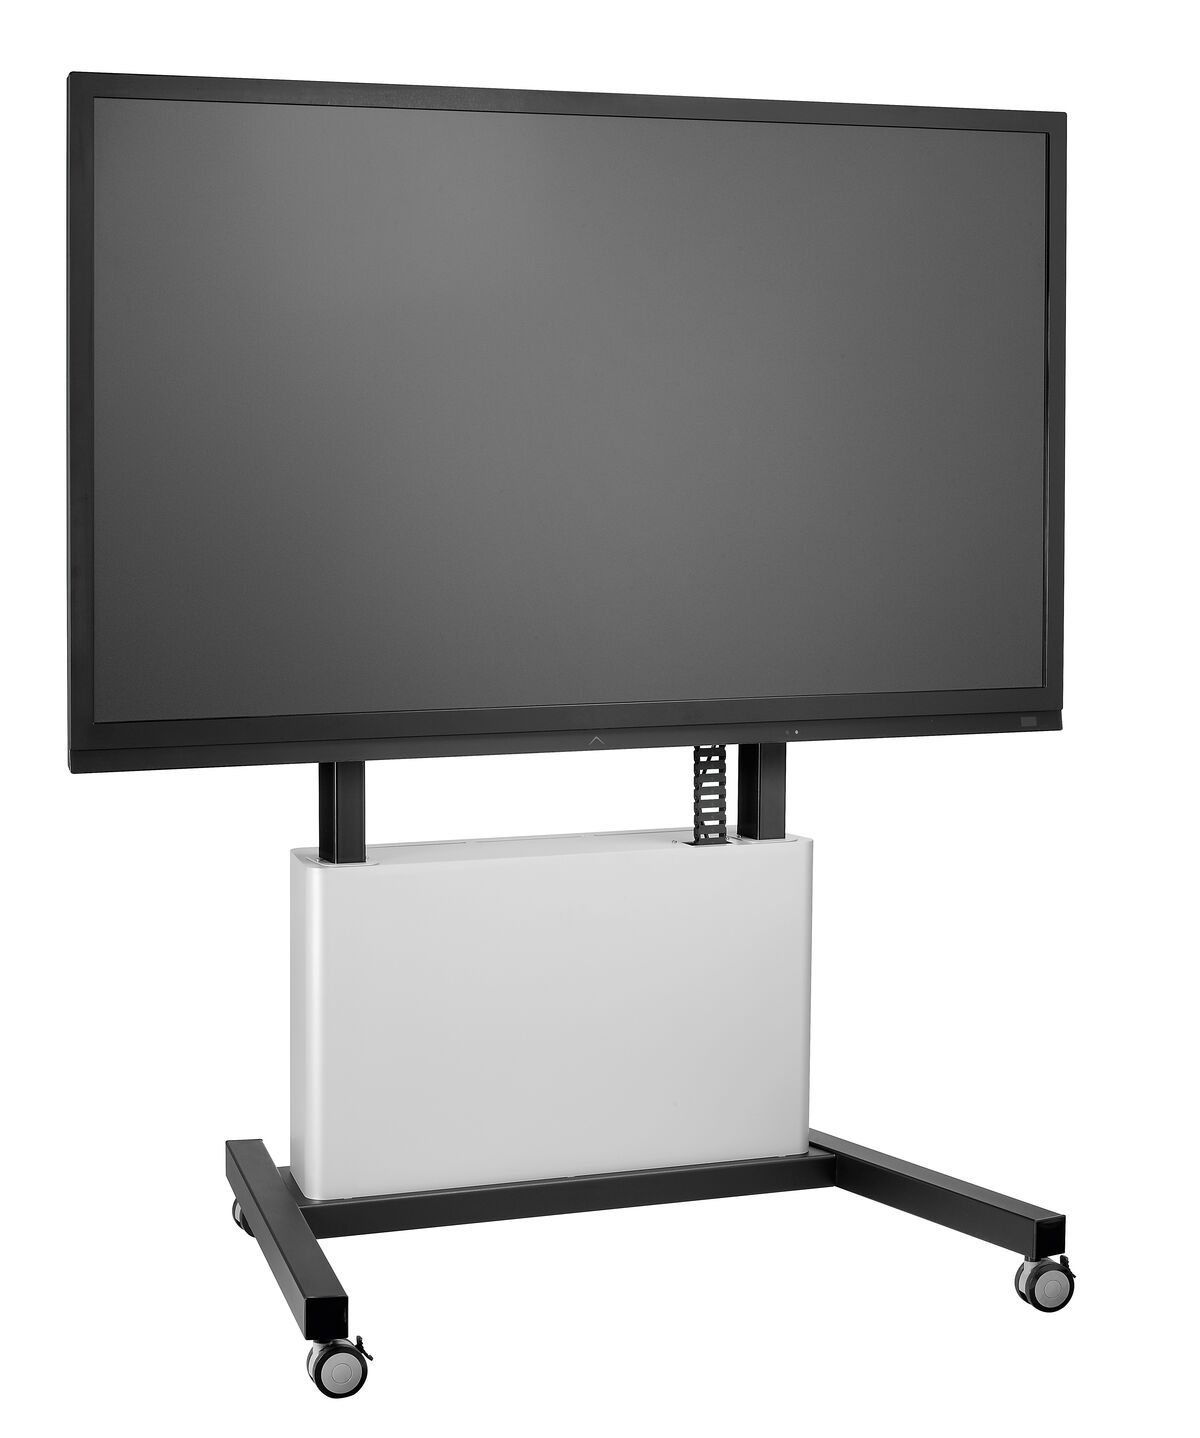 Vogel's PFTE 7111 Display trolley motorized with cabinet - Application